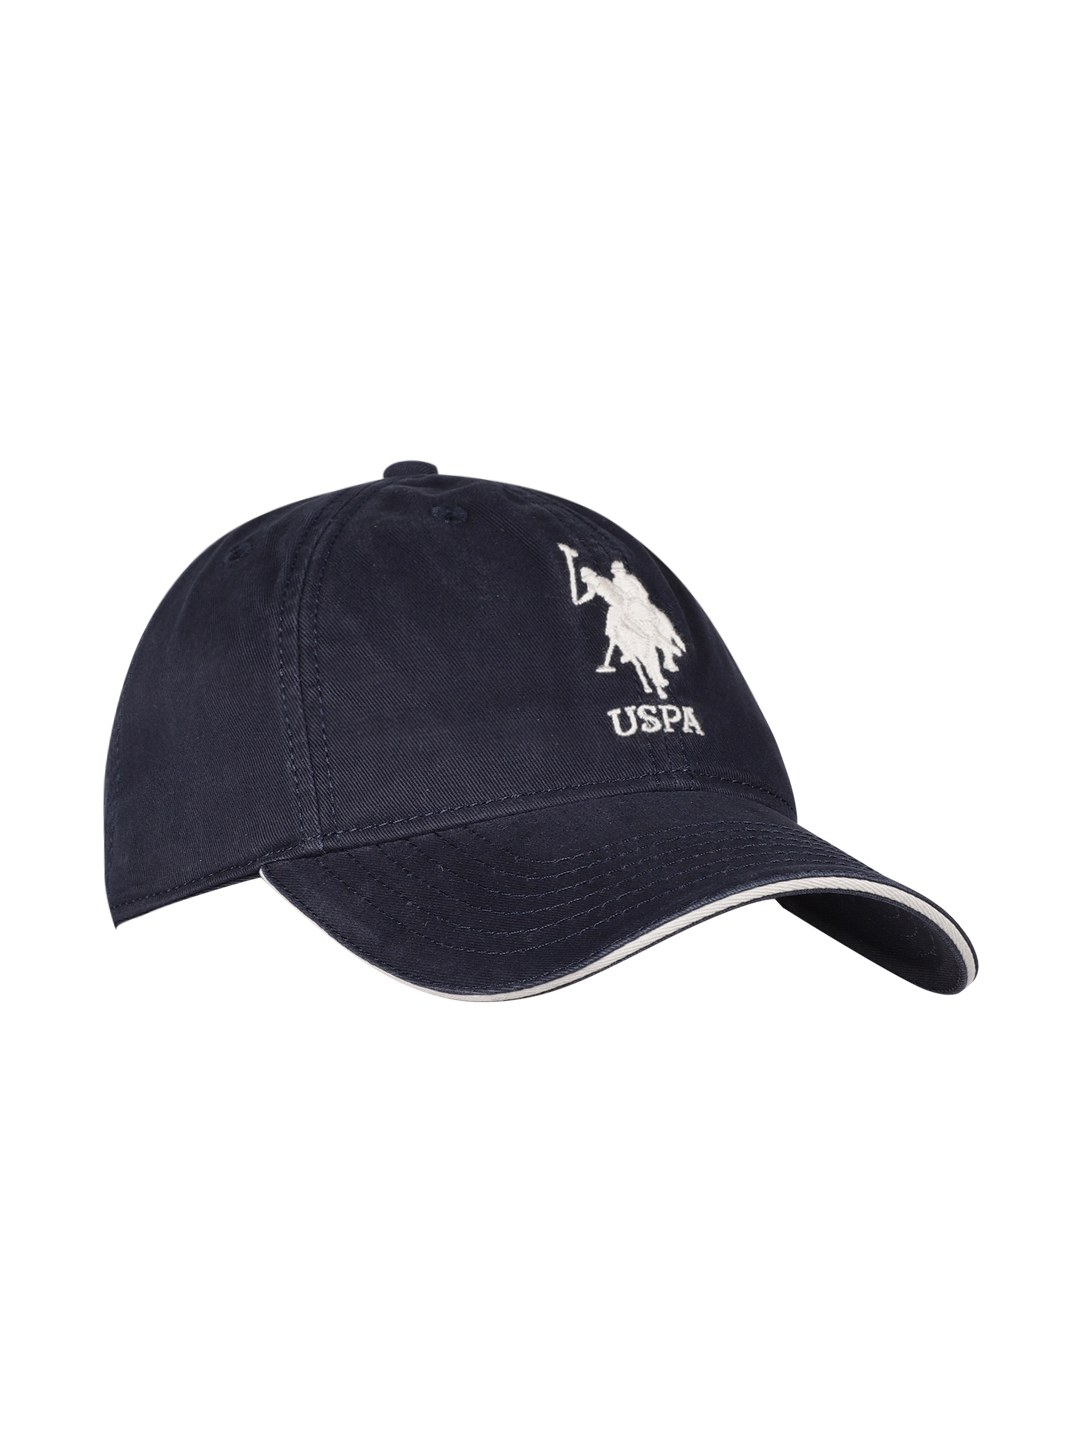 Buy U.S. Polo Assn. Men Navy Blue Solid Baseball Cap - Caps for Men ... 8792db87140